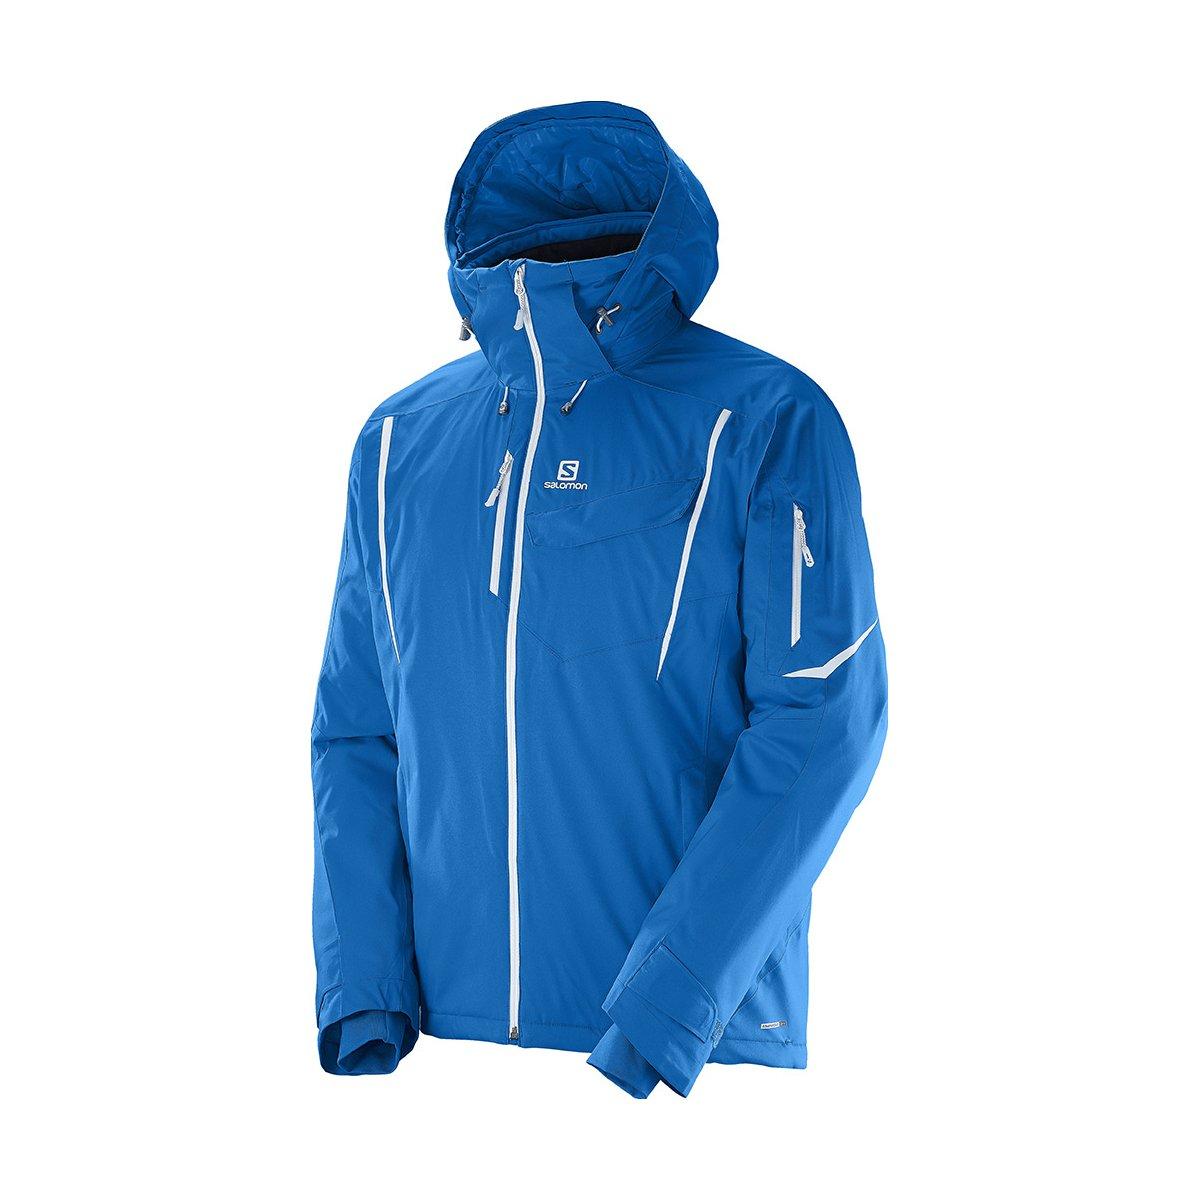 Salomon Enduro Jacket M Union Blue